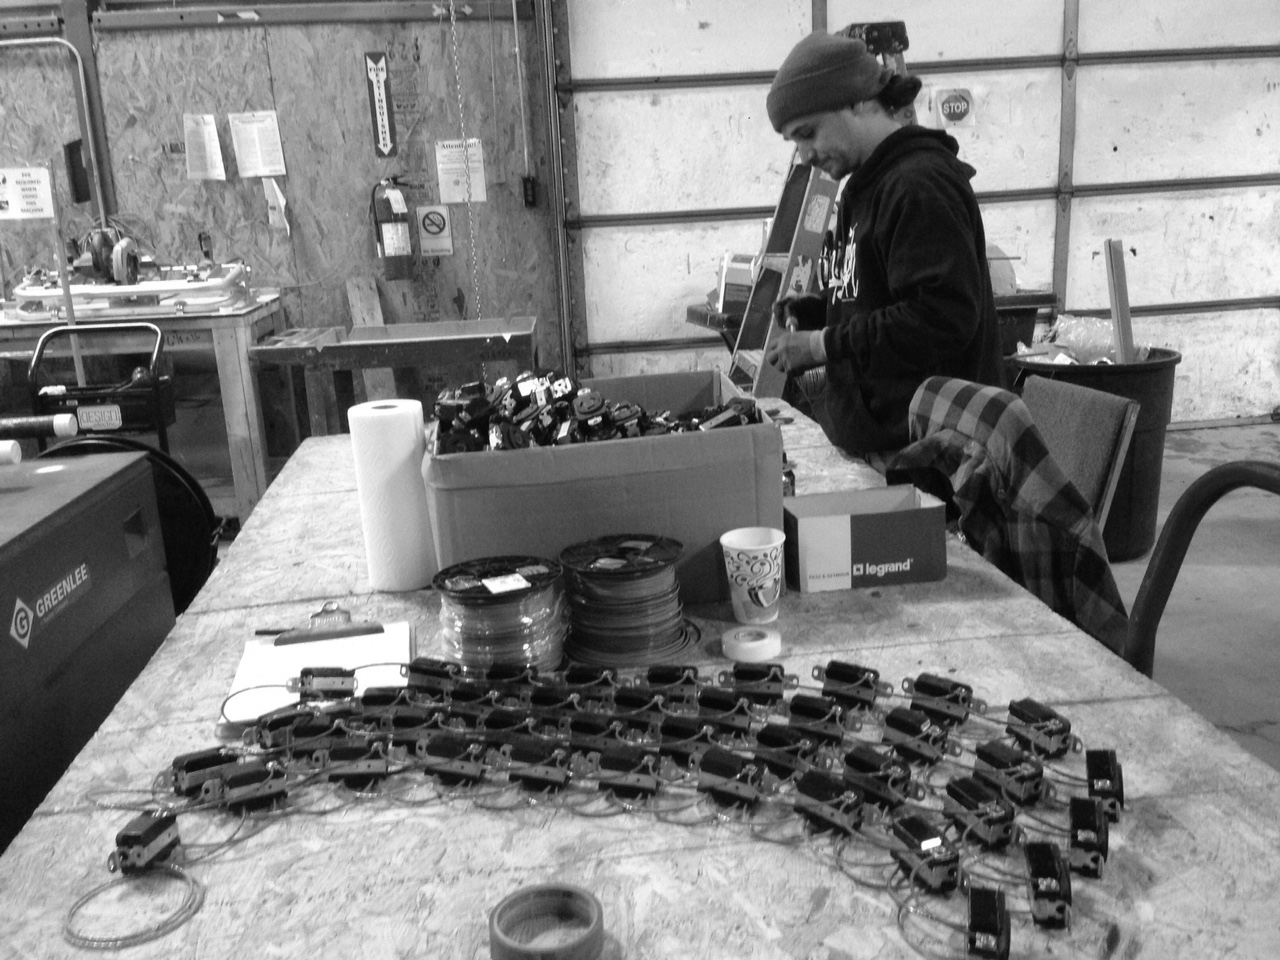 Dustin Spitler puts together some of the 4,740 receptacle assemblies that were prefabricated for this job to provide circuits for lighting the growing racks.